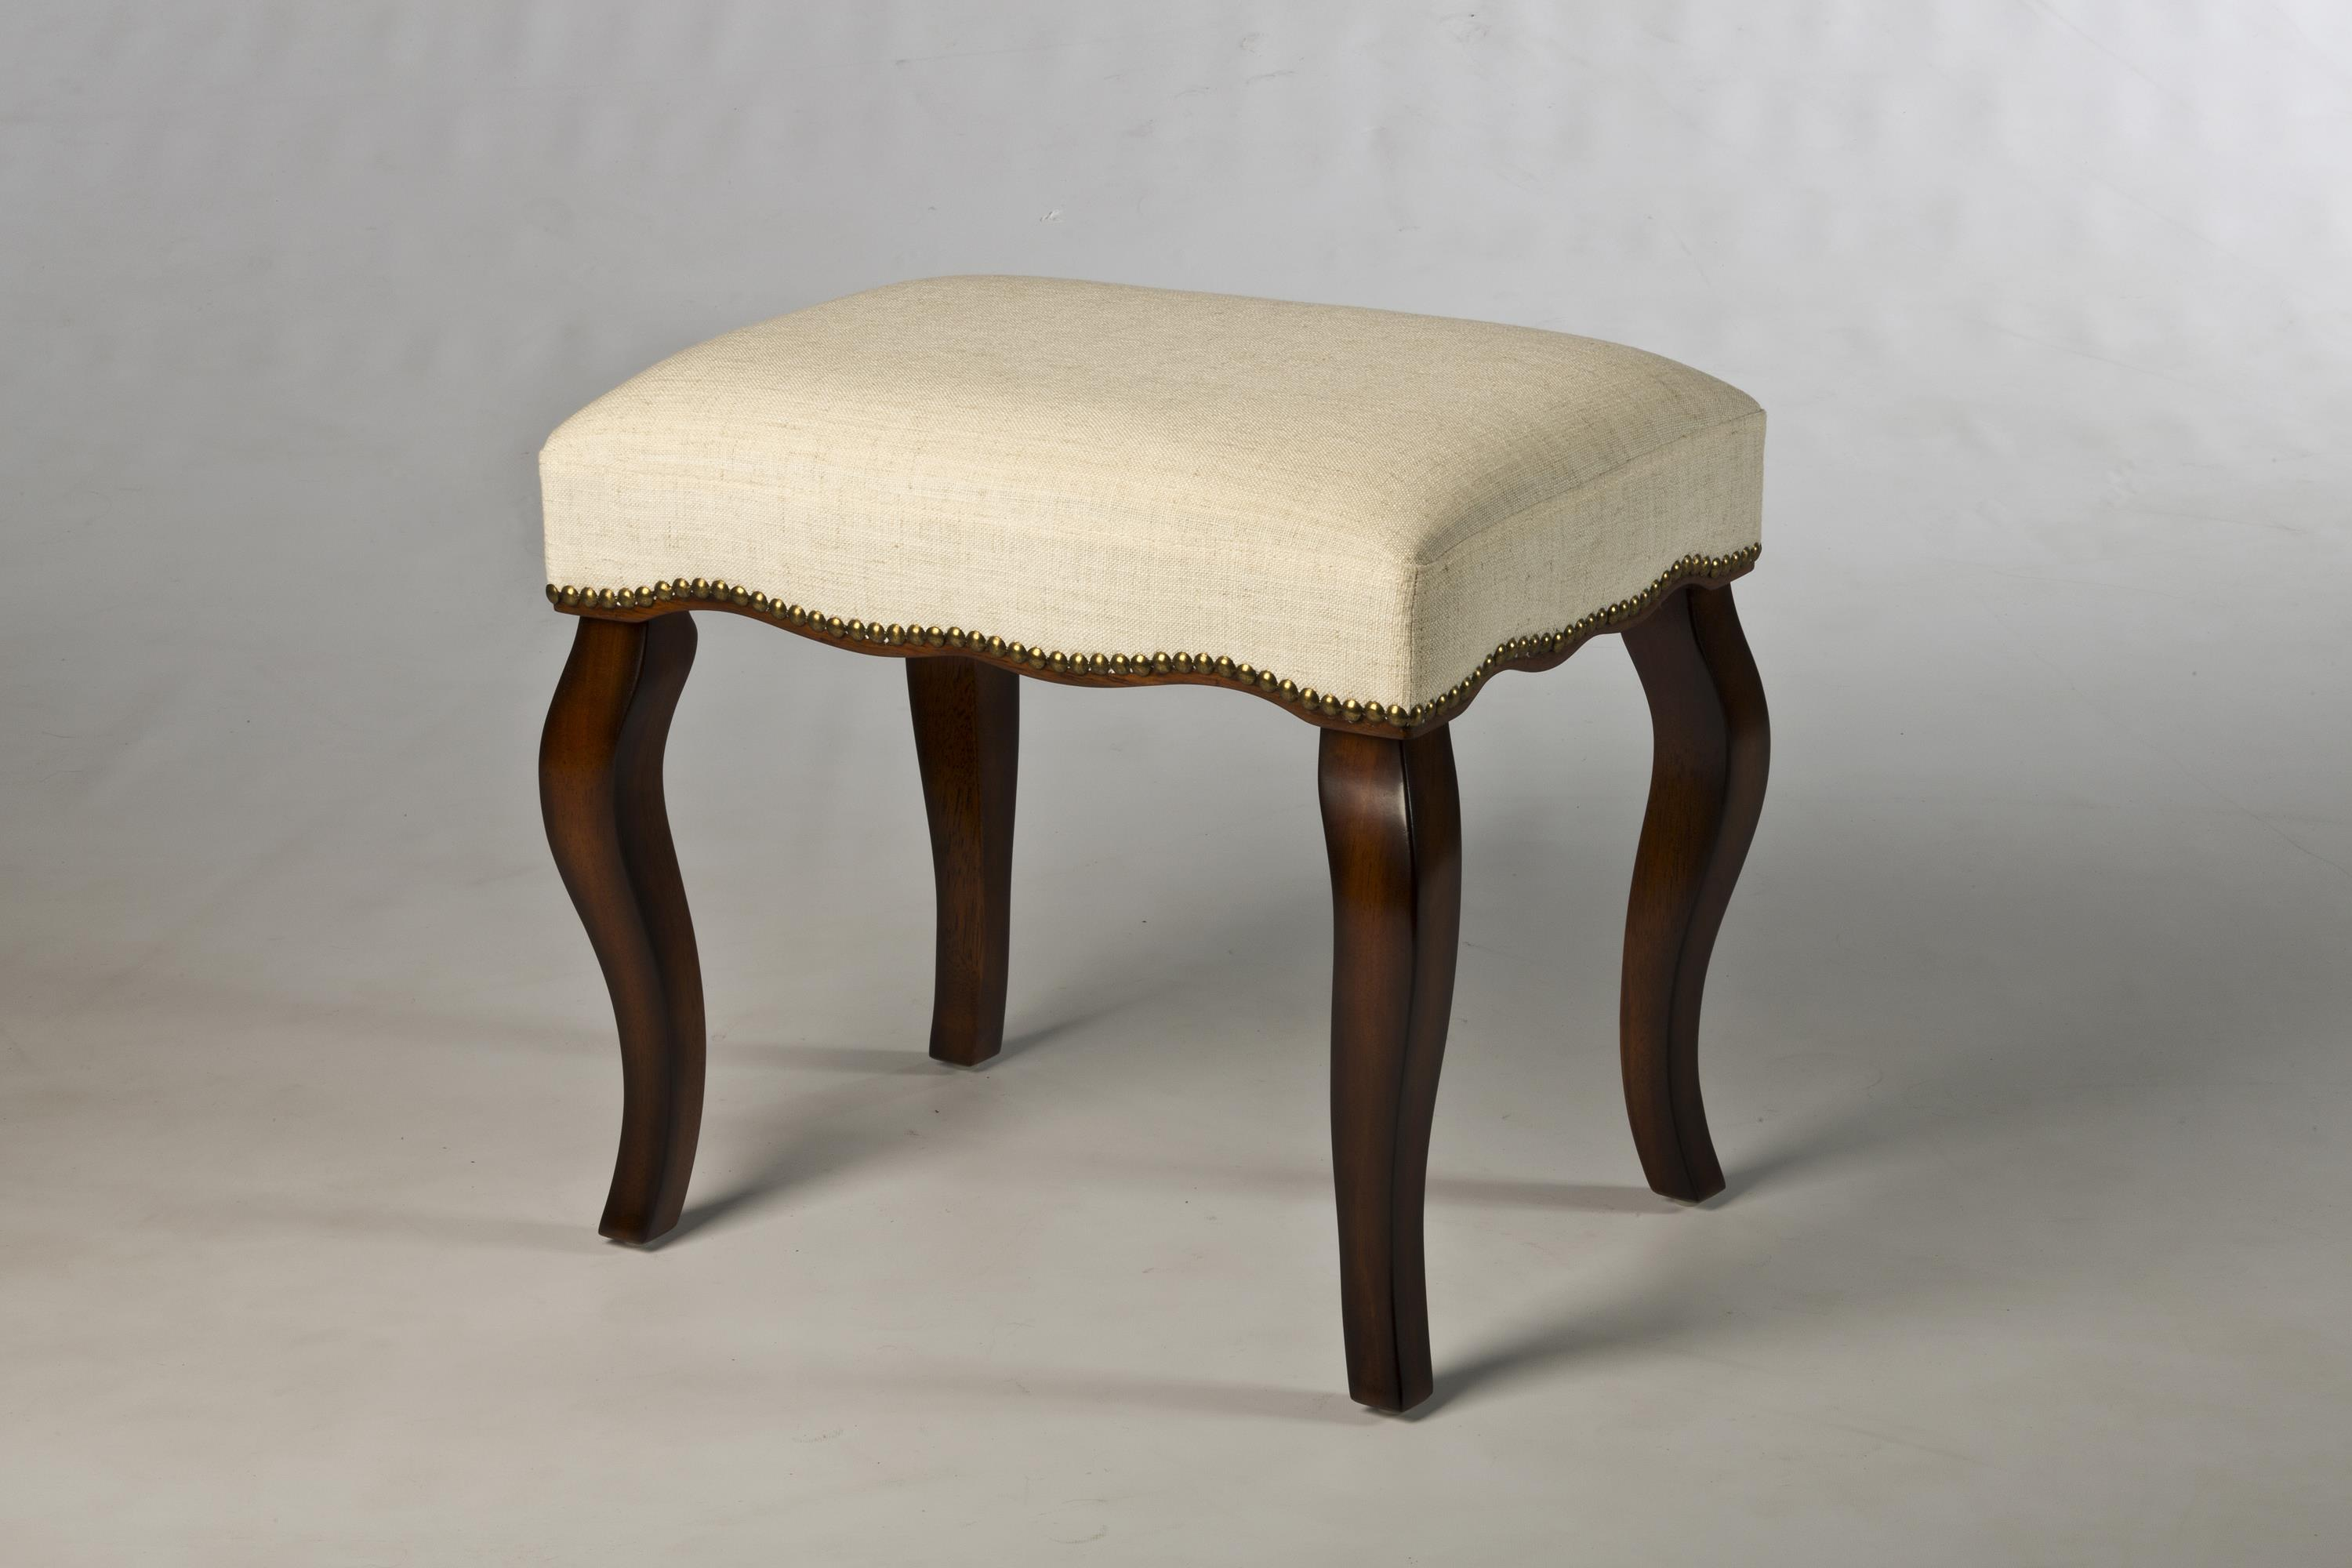 Wooden Vanity Chair Hamilton Backless Vanity Stool With Curved Legs By